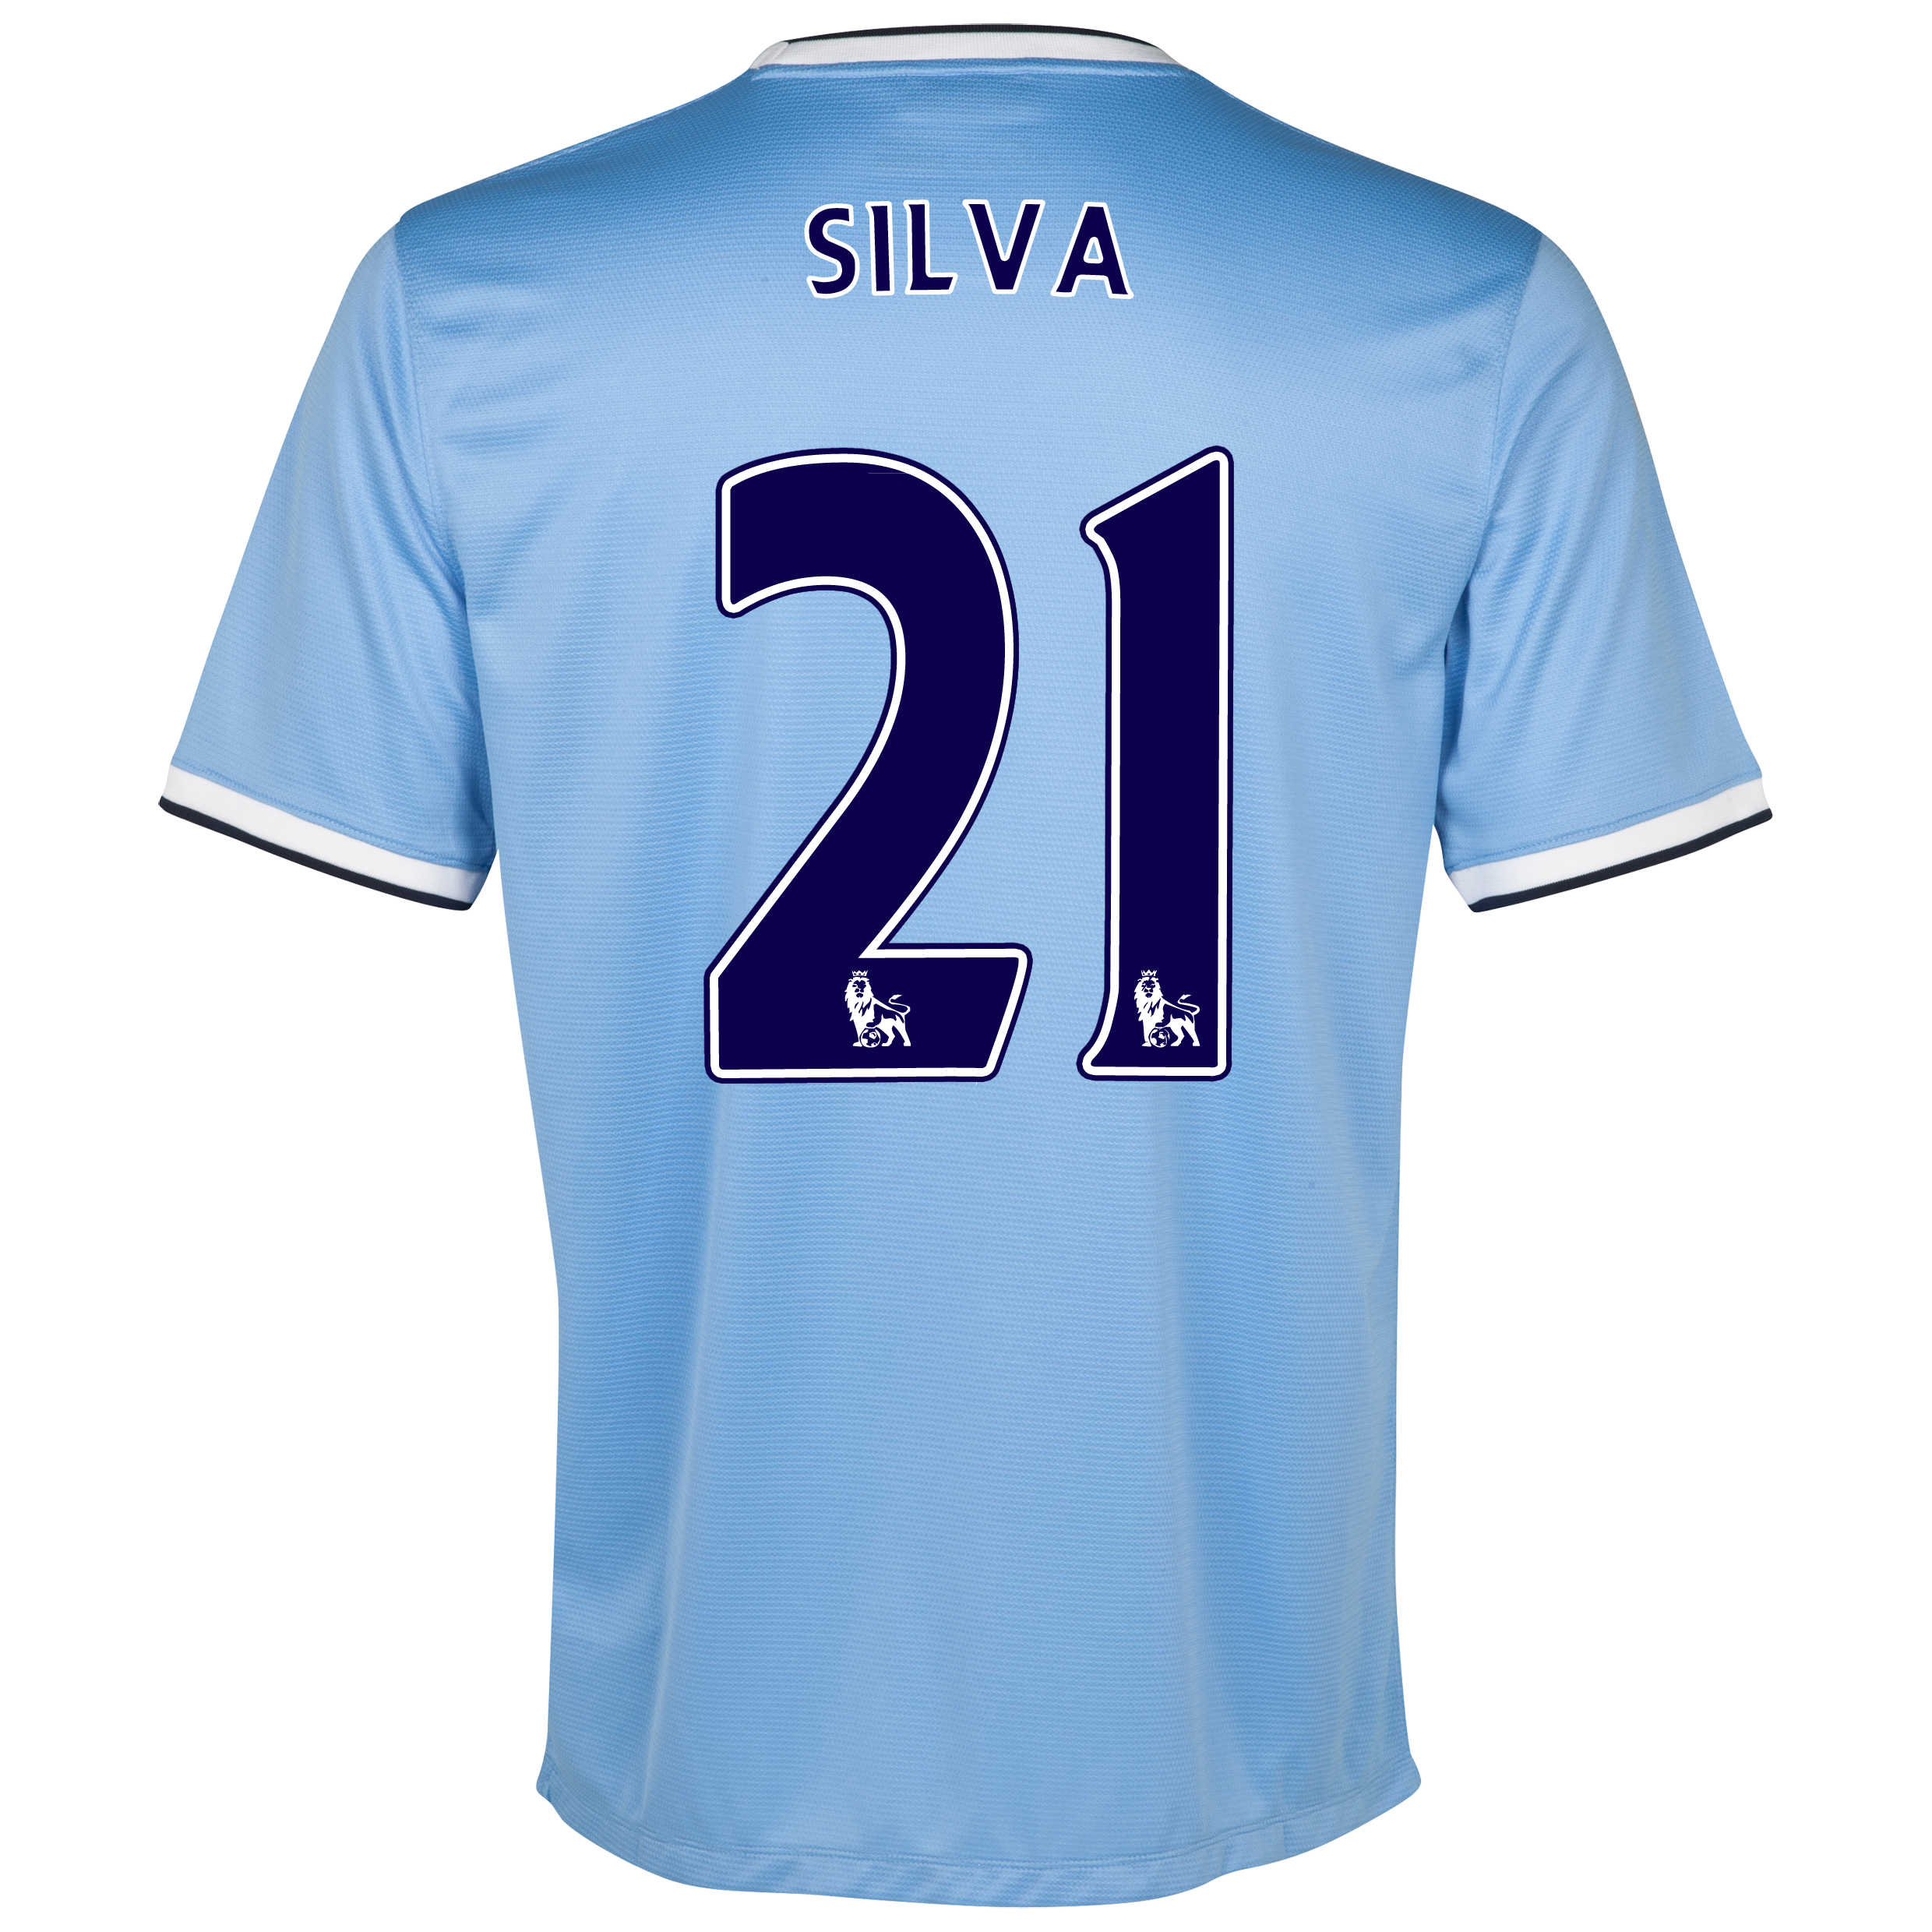 Manchester City Home Shirt 2013/14 with Silva 21 printing